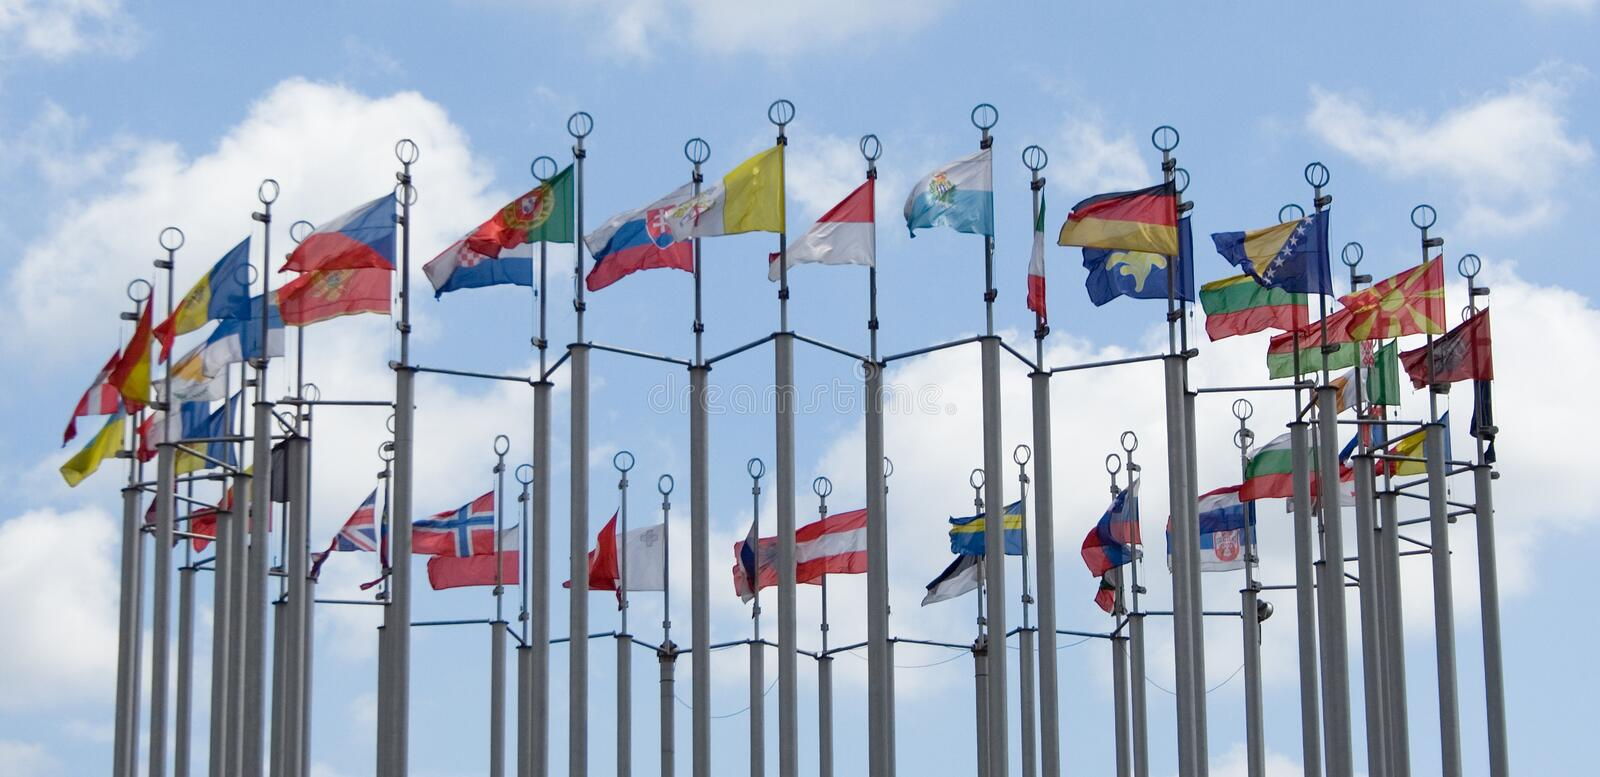 Flags of different countries. On cloudy blue sky background royalty free stock image